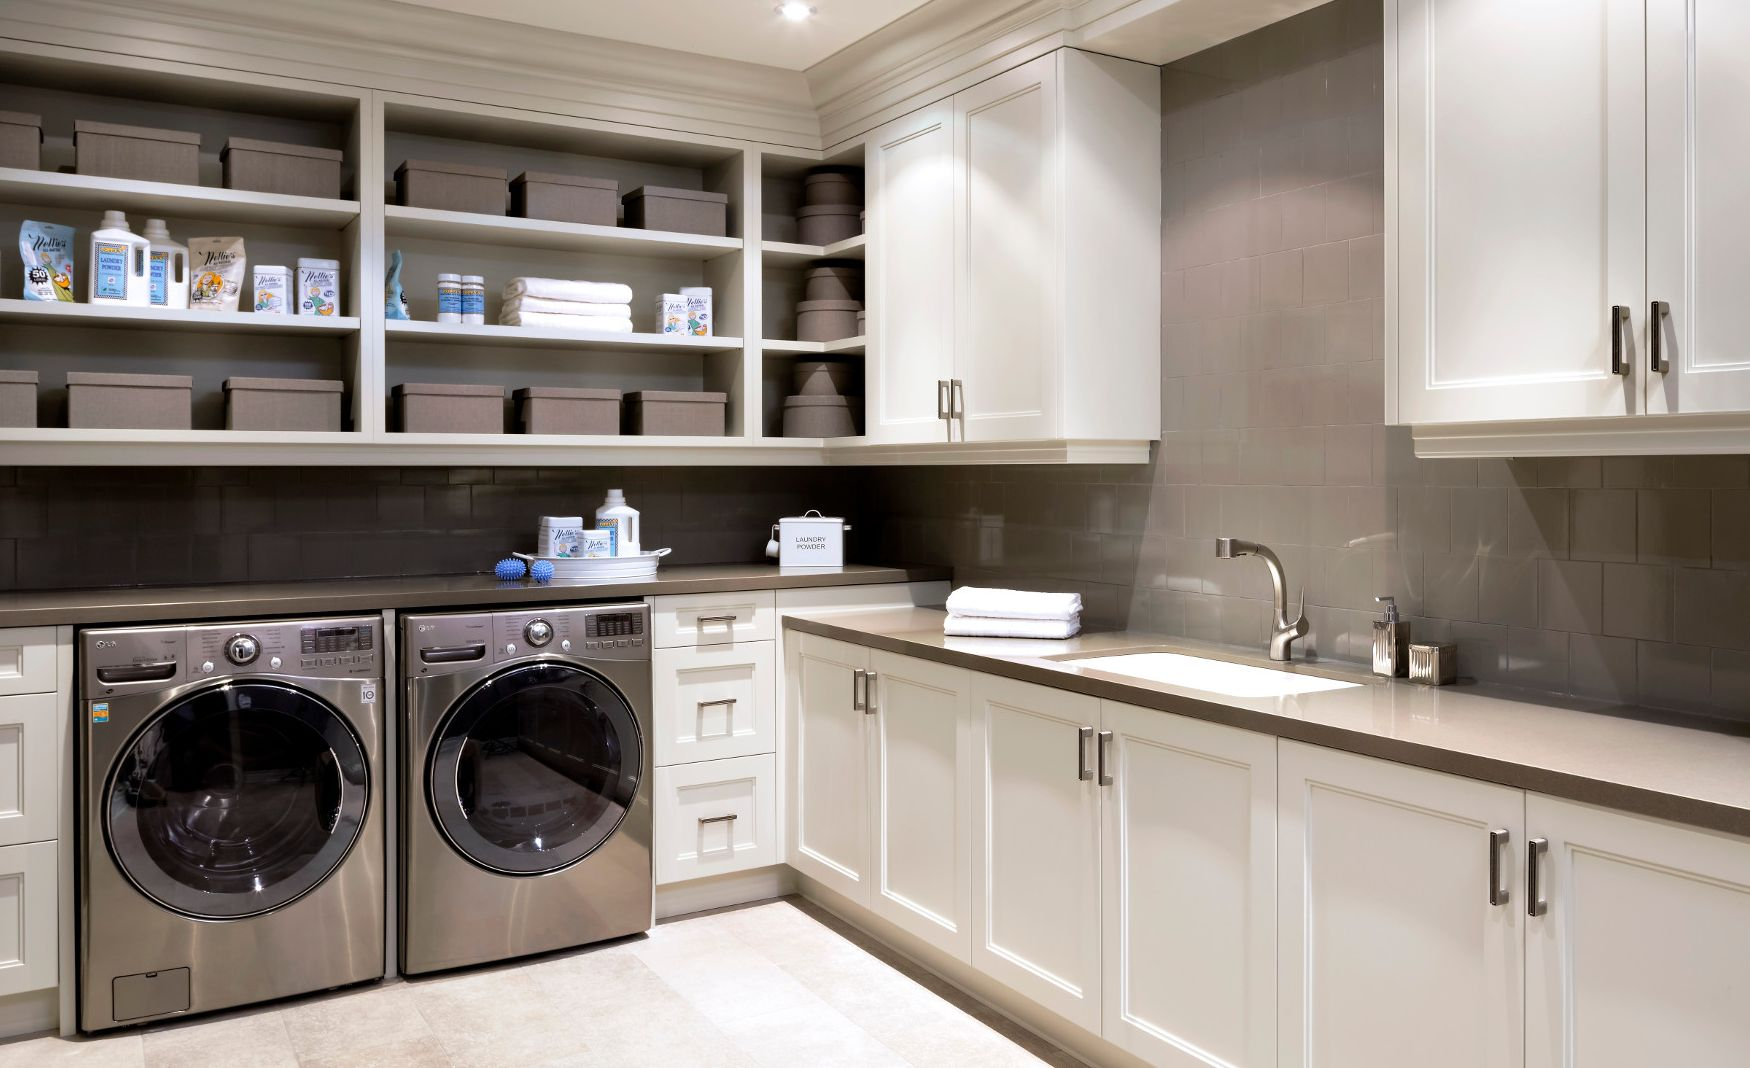 Cambria Devon countertops in a sleek and stylish laundry room.